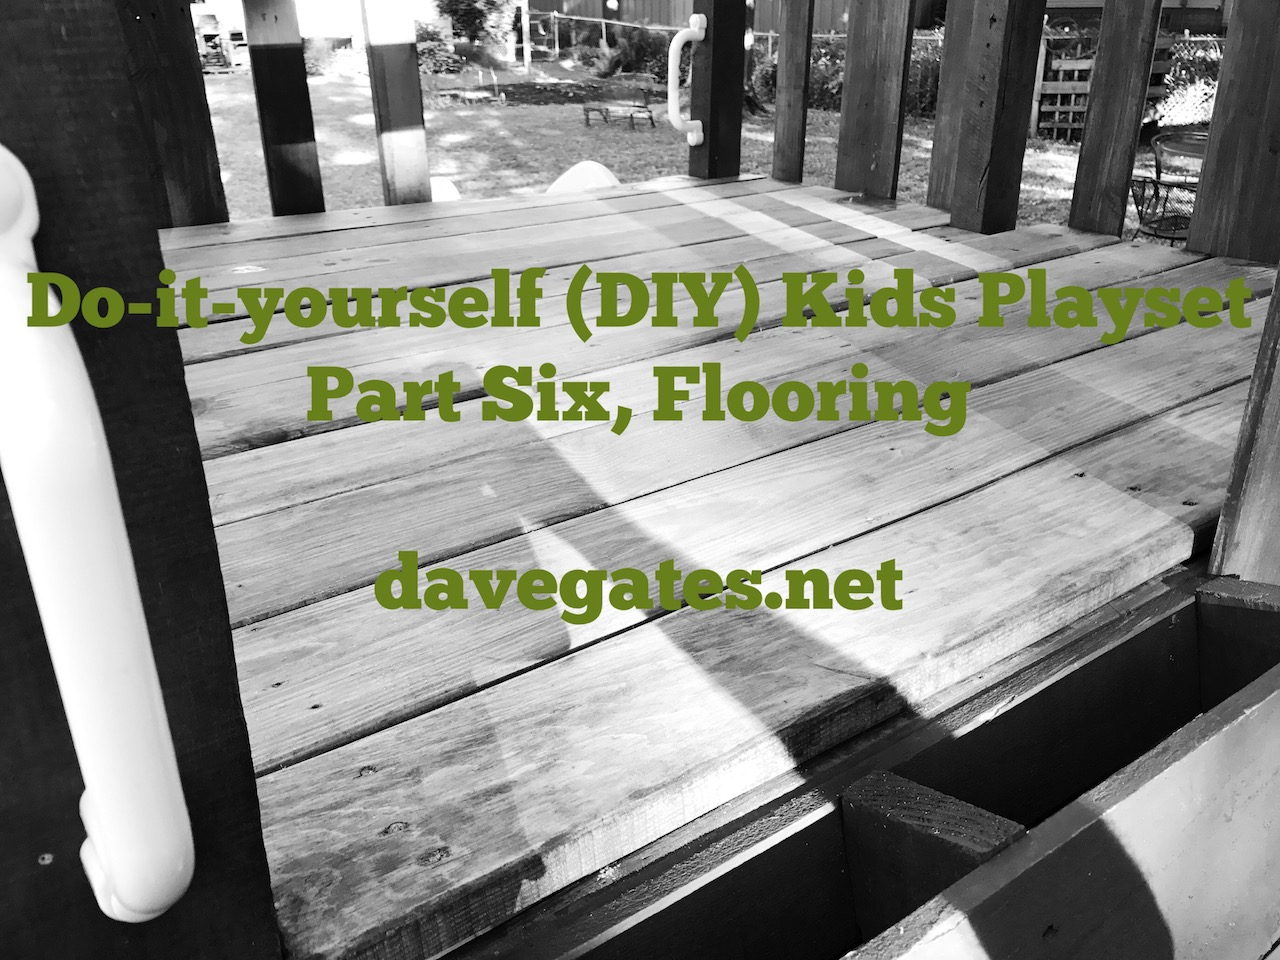 Do-it-yourself (DIY) Kids Playset – Part Six, Flooring